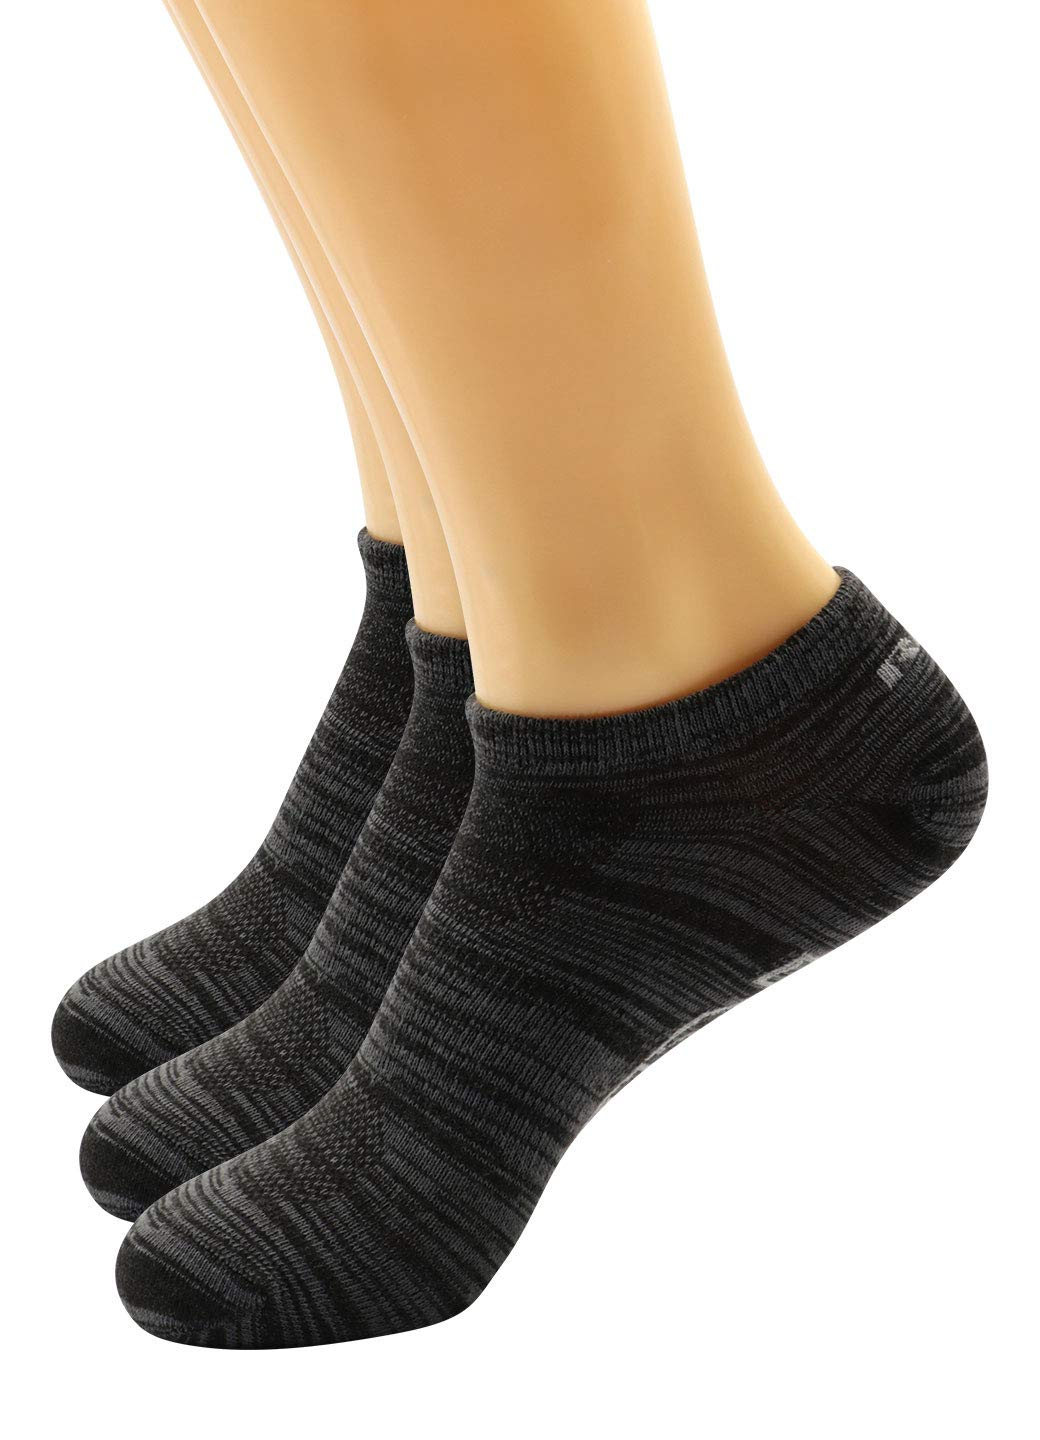 RBX Active Women's Basics 6-Pack Low Cut Ankle No Show Athletic Casual  Everyday Socks